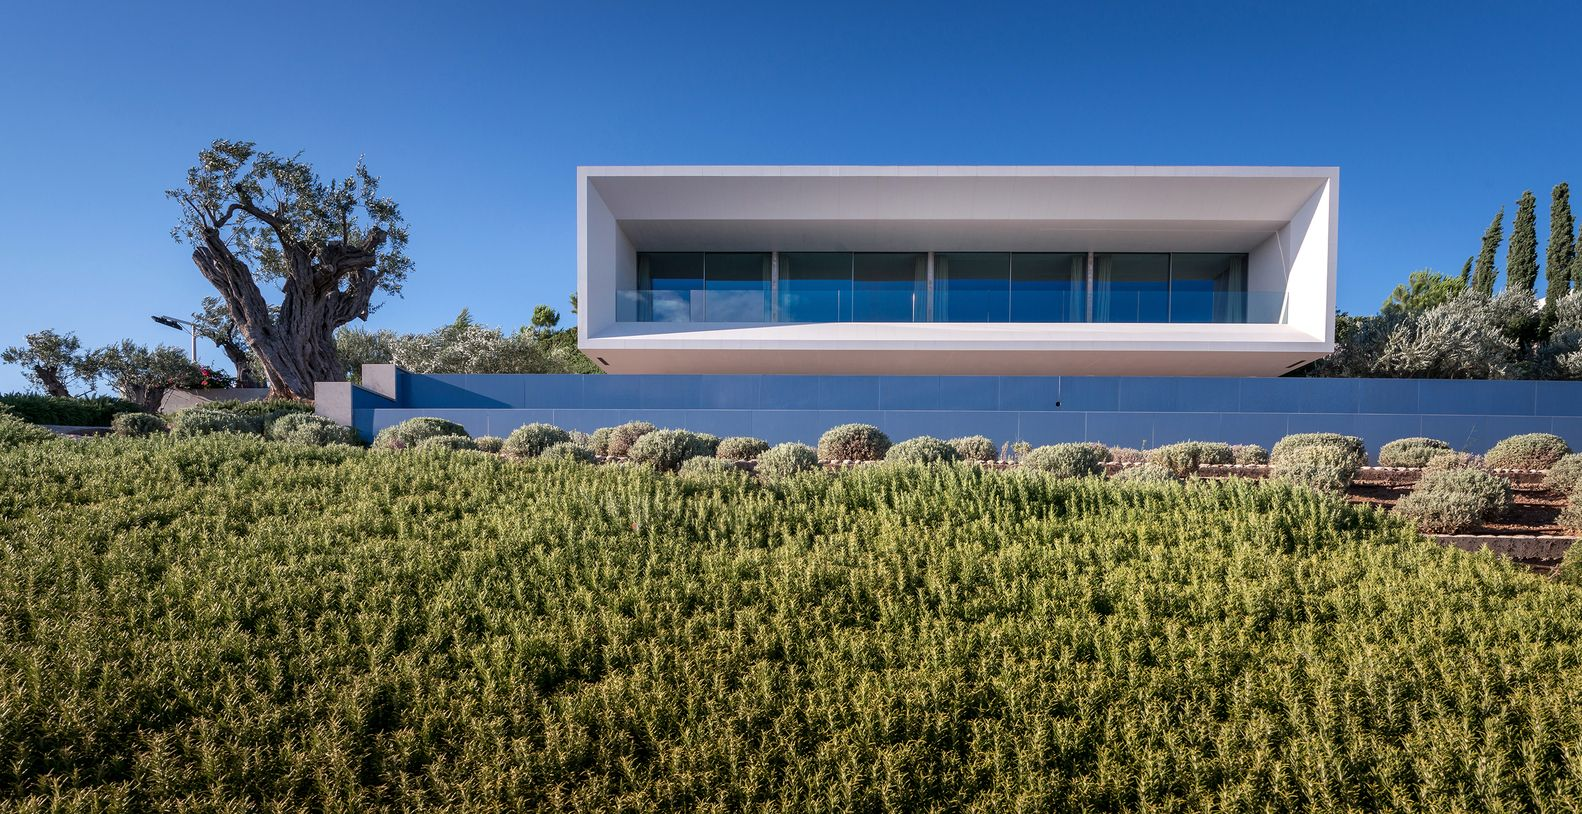 Gallery Of Trif House Sergey Fedotov 5 Contemporary House Design Architecture House